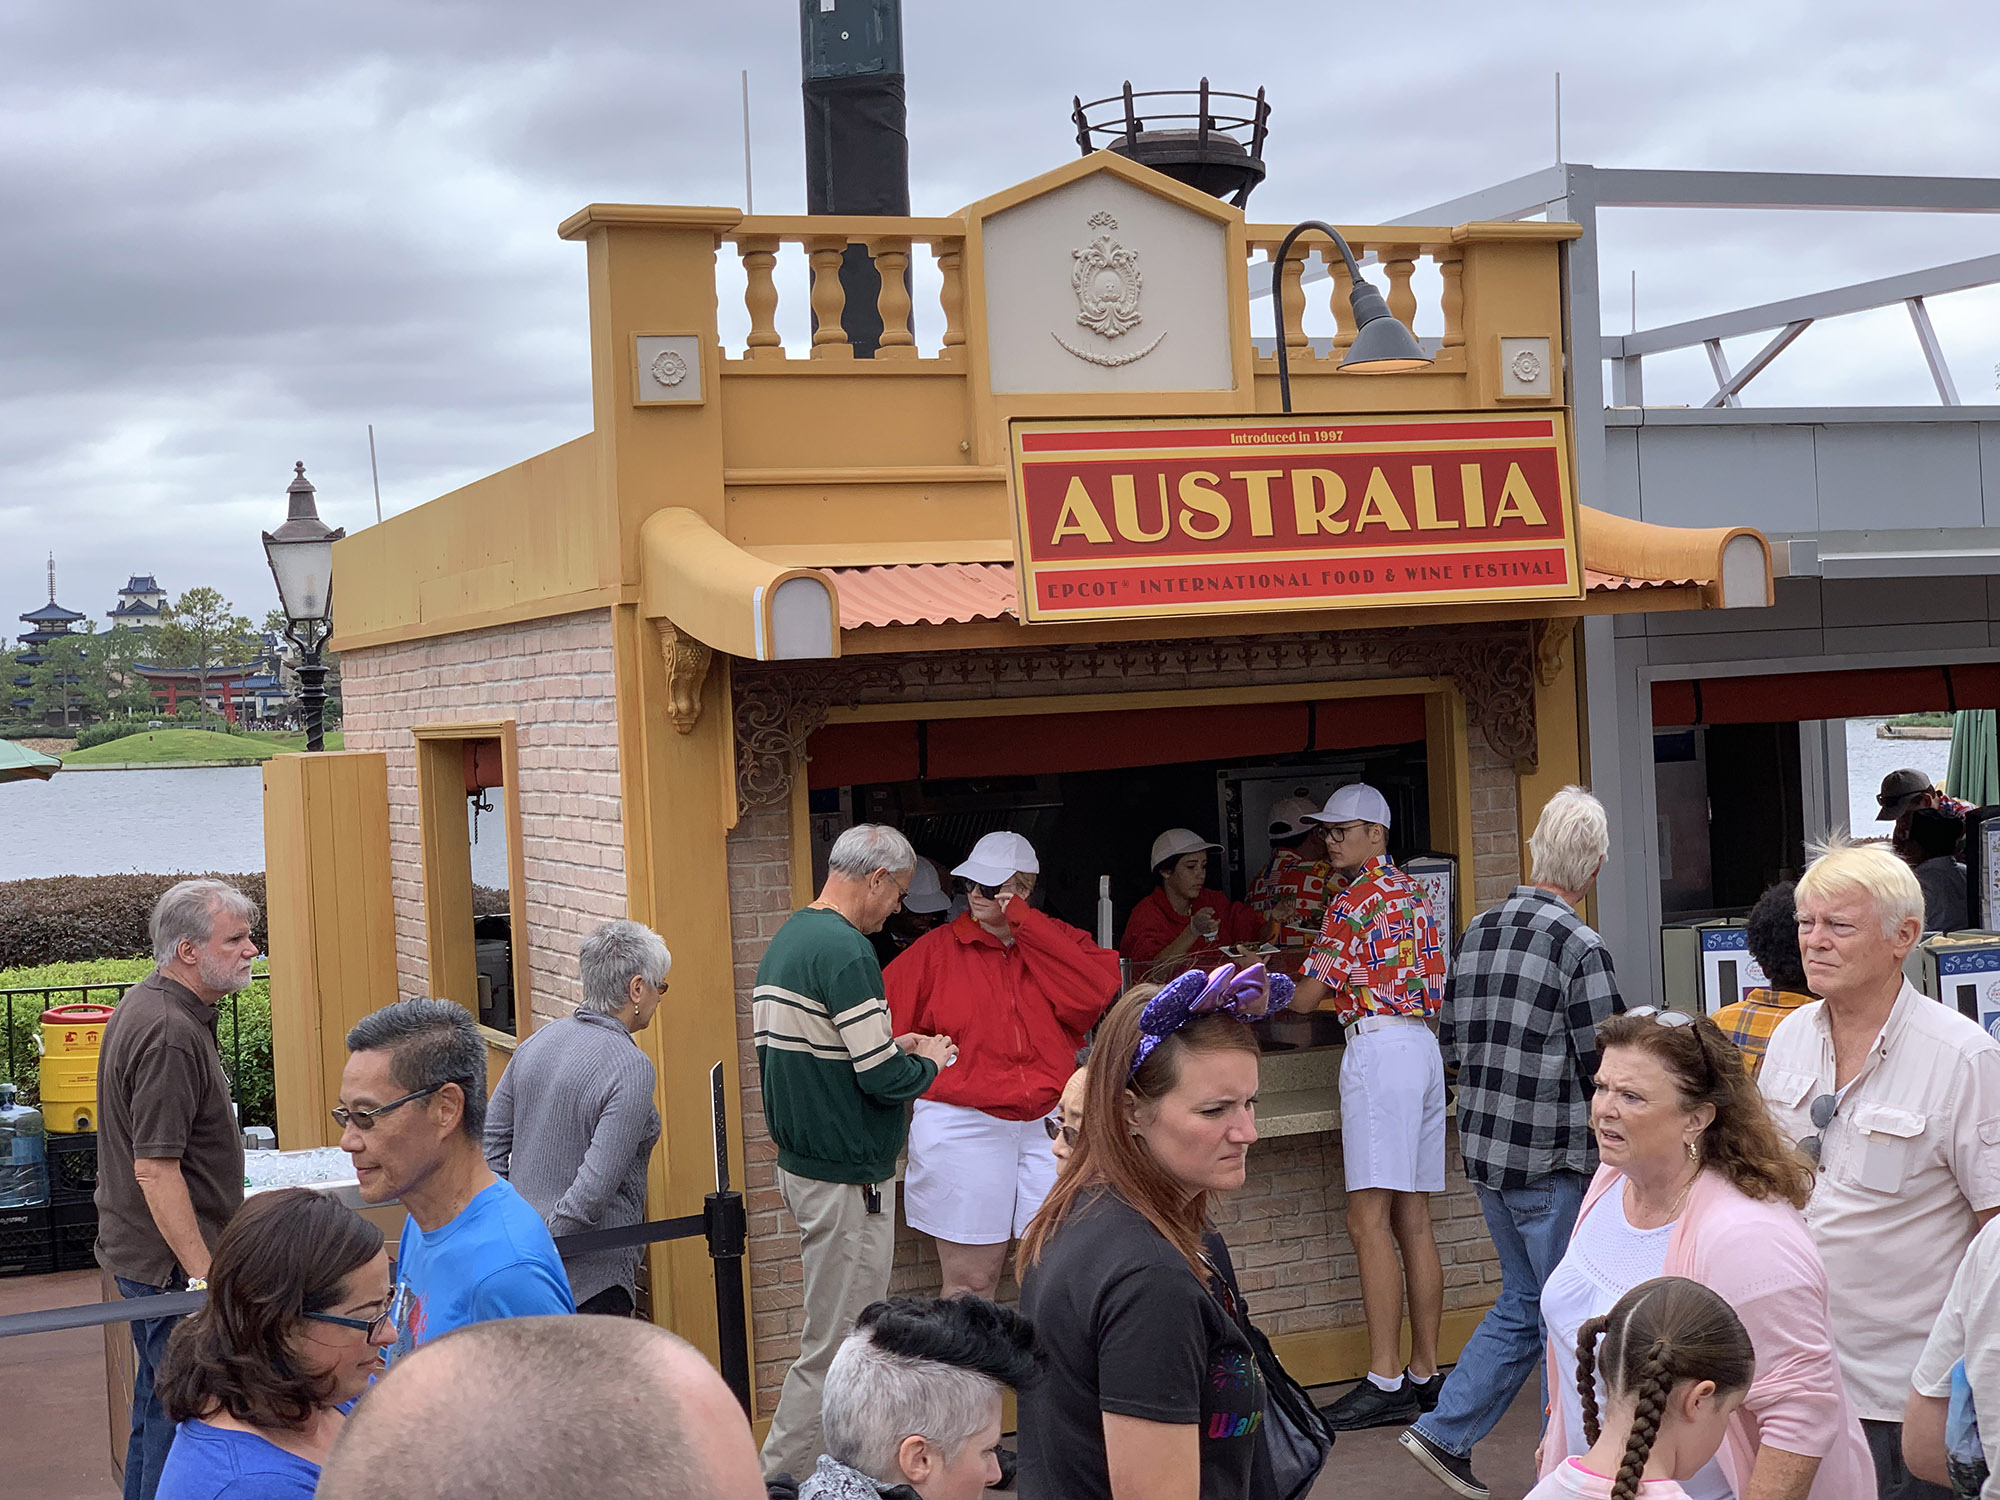 countries at Epcot International Food & Wine Festival